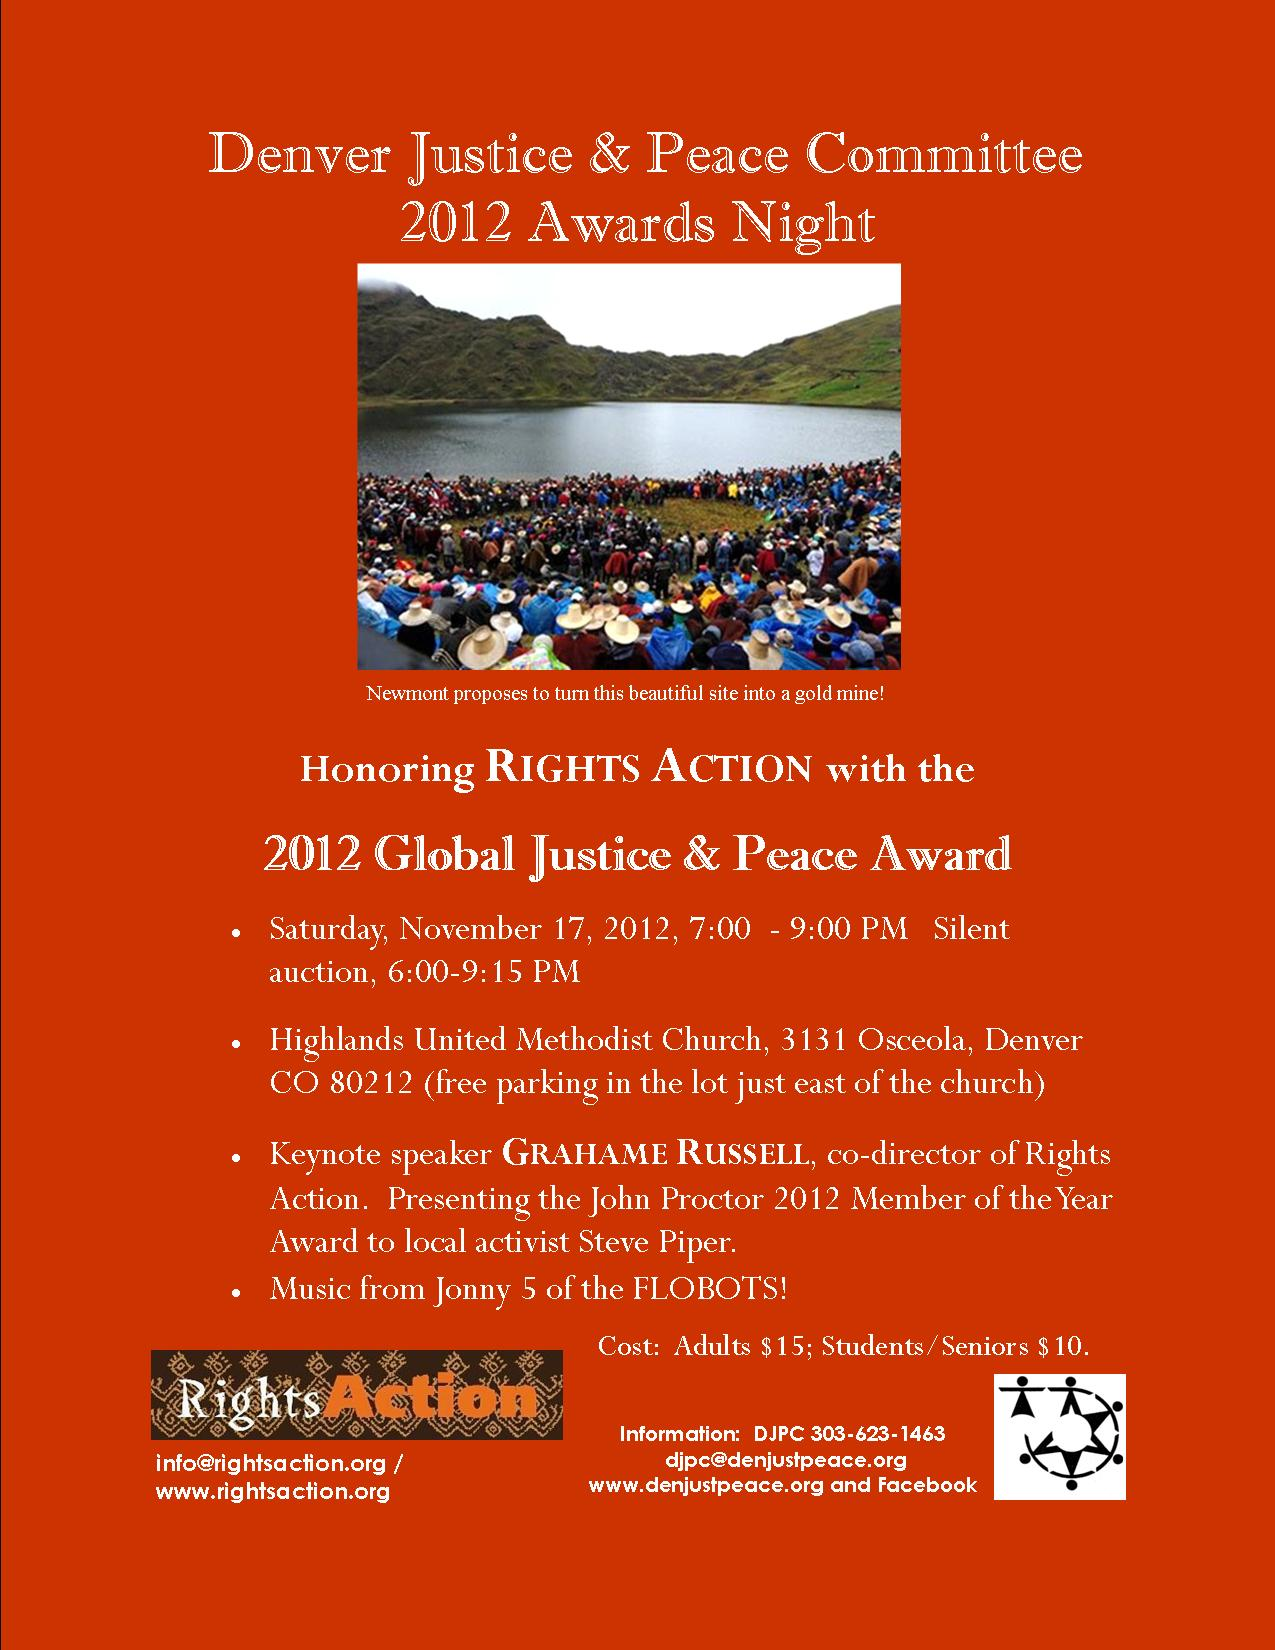 (English) Tonight Awards Night 2012!